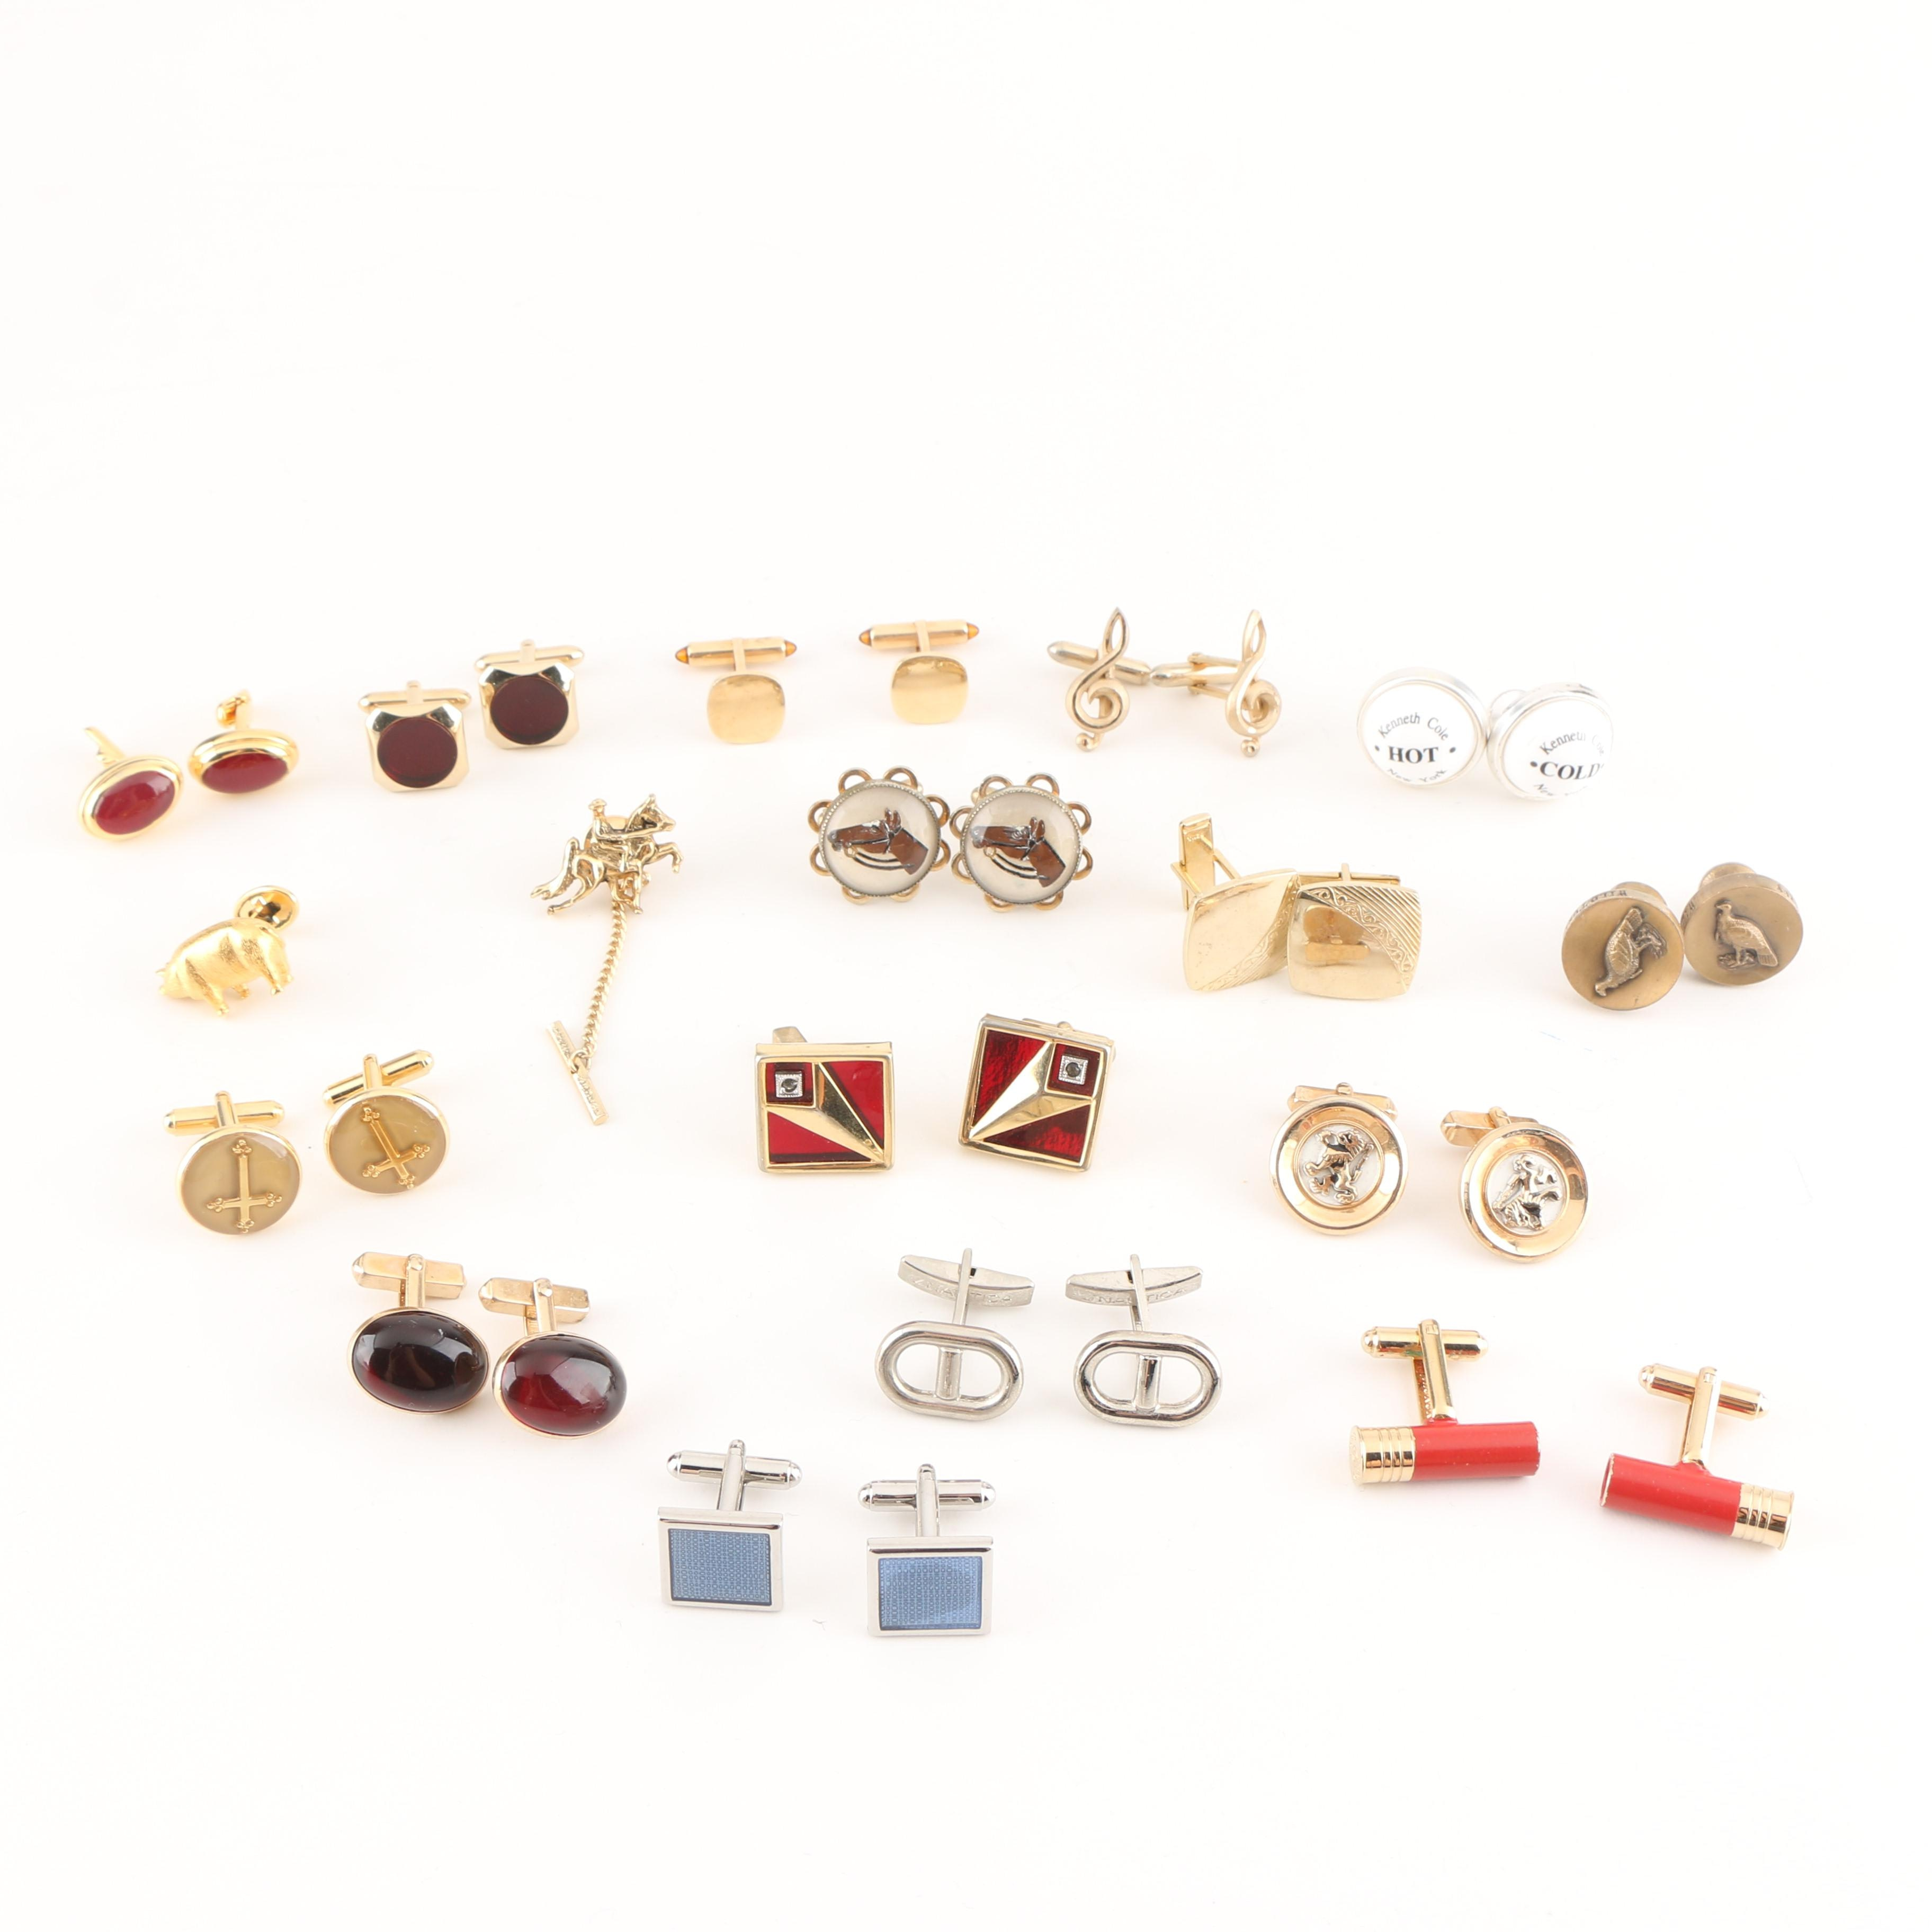 Assortment of Cufflinks Featuring Kenneth Cole